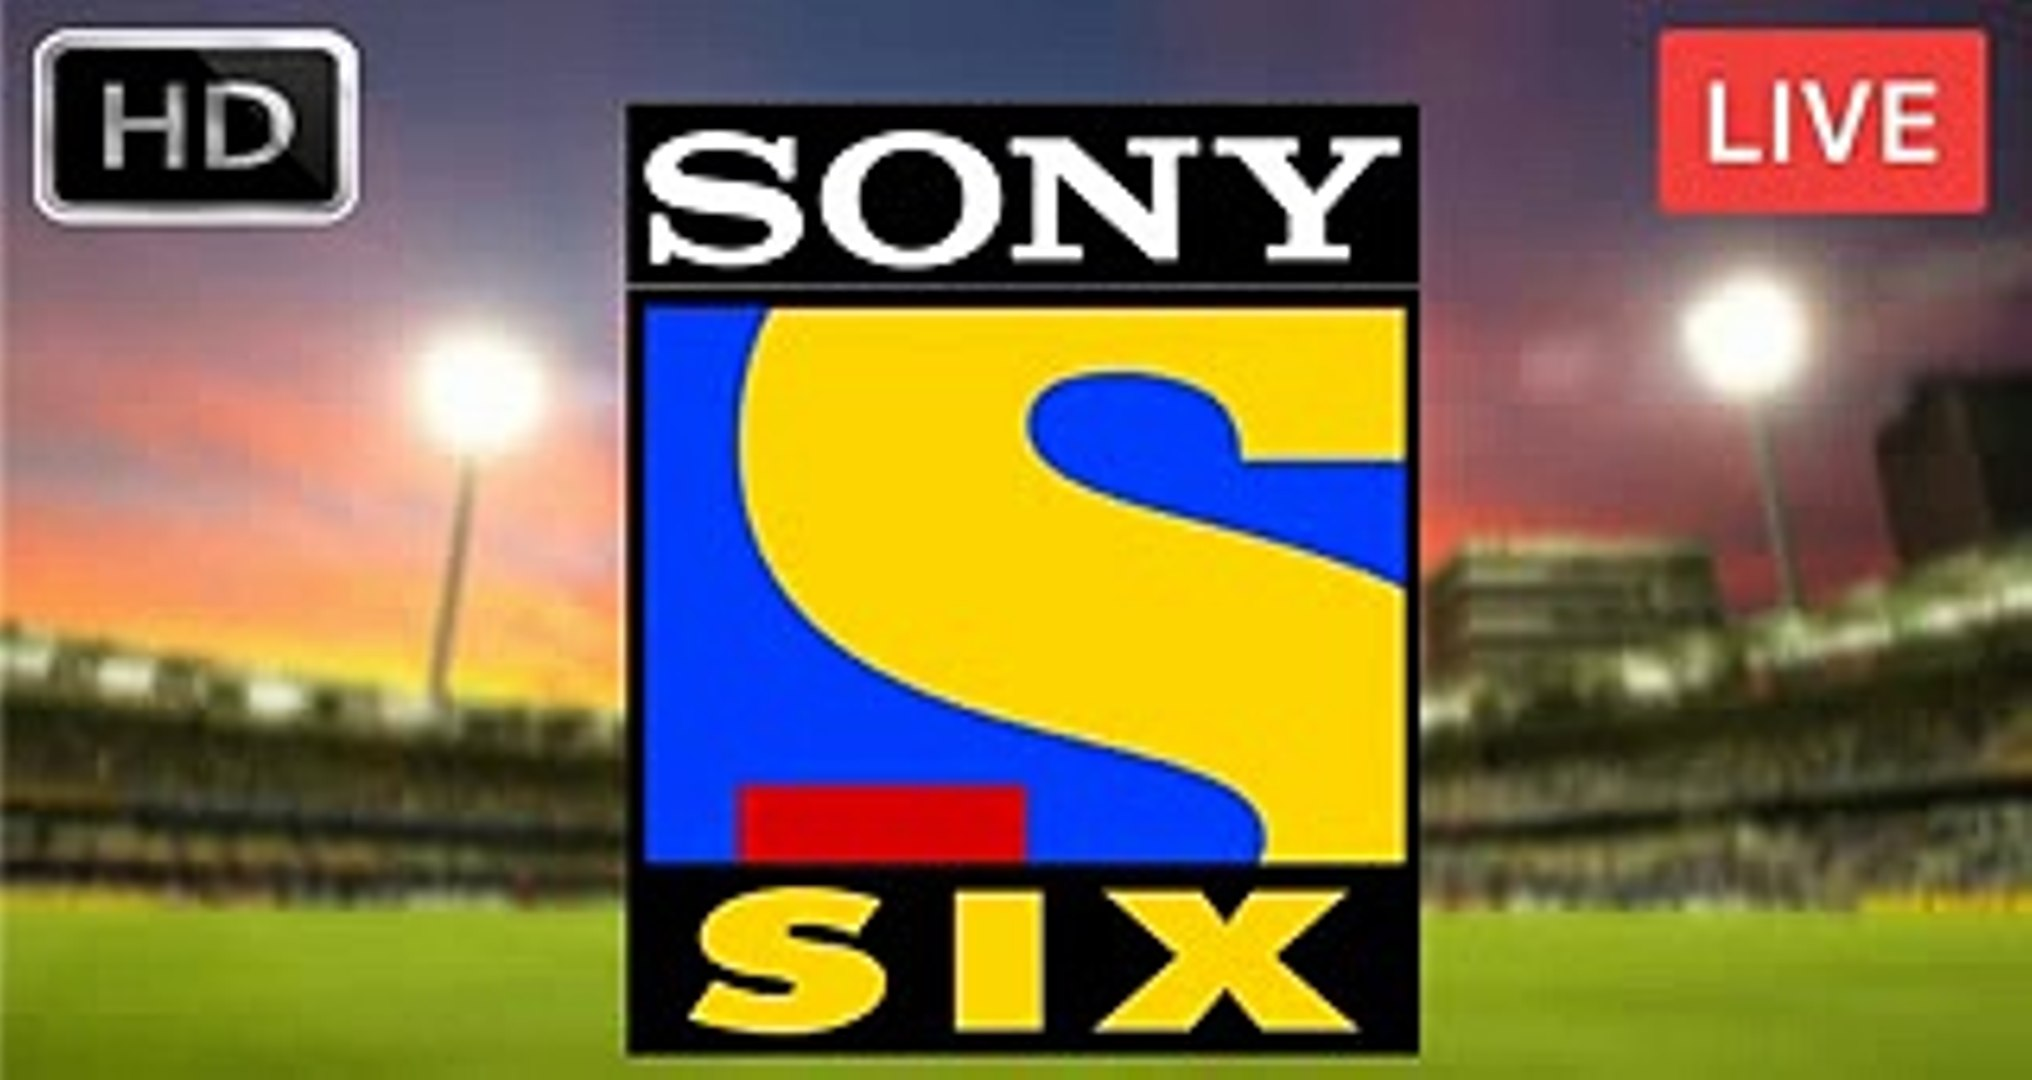 Sony Liv live cricket streaming India v Australia 4th Test day 3 with highlights